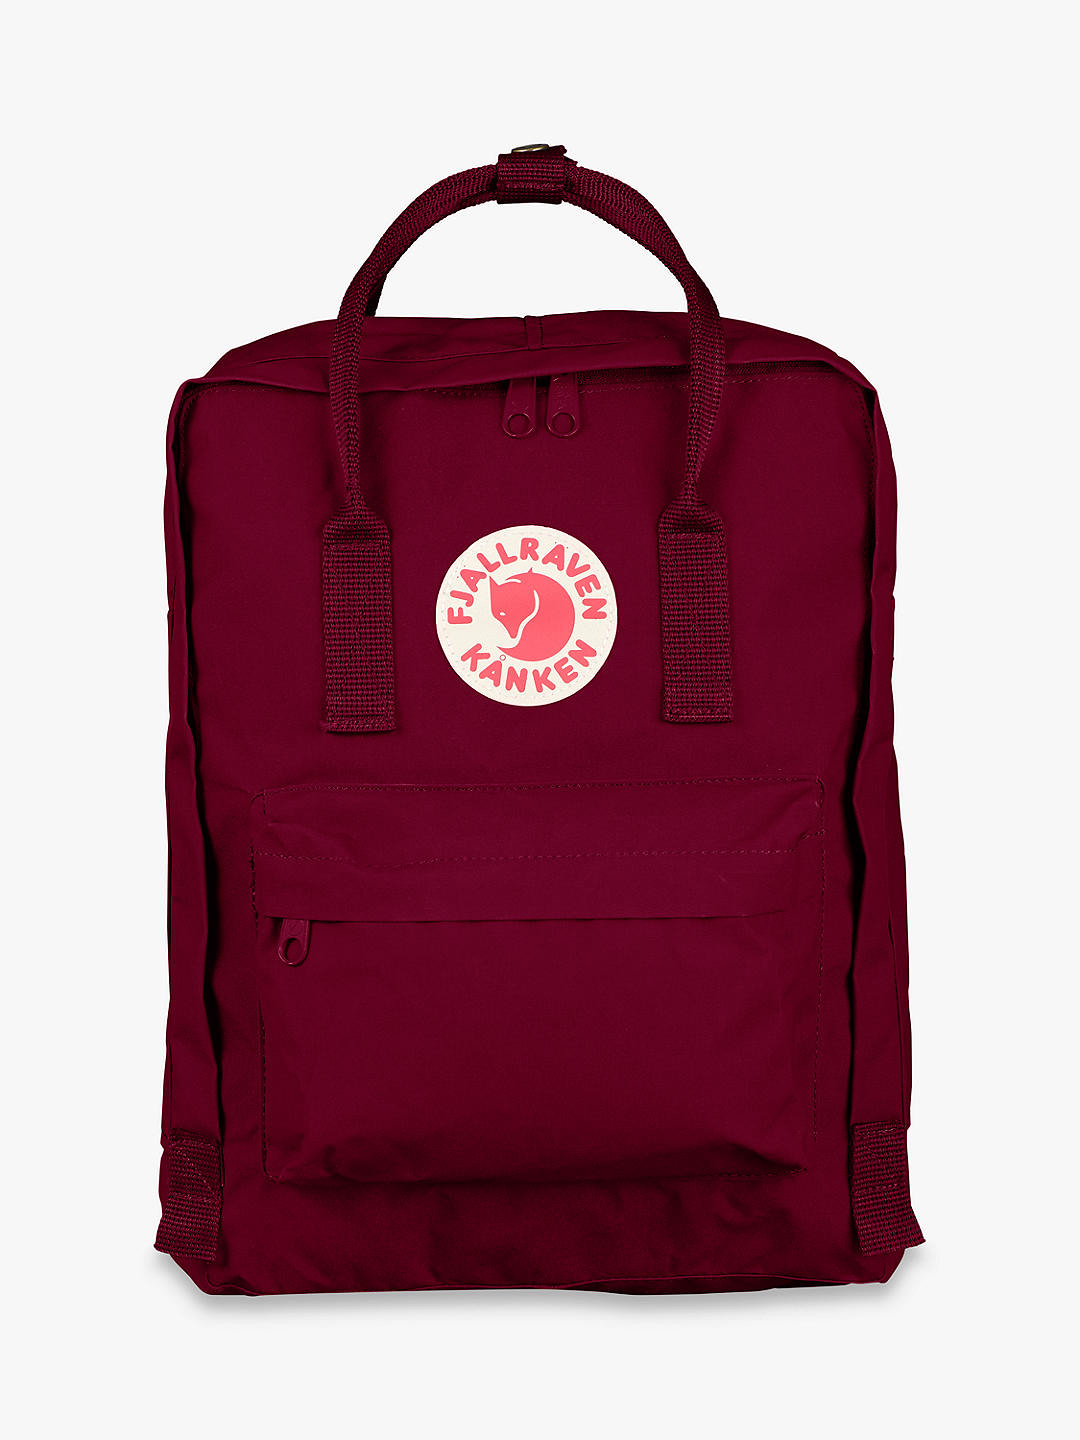 Iconic Kånken backpack with a padded 15 inch laptop pocket.